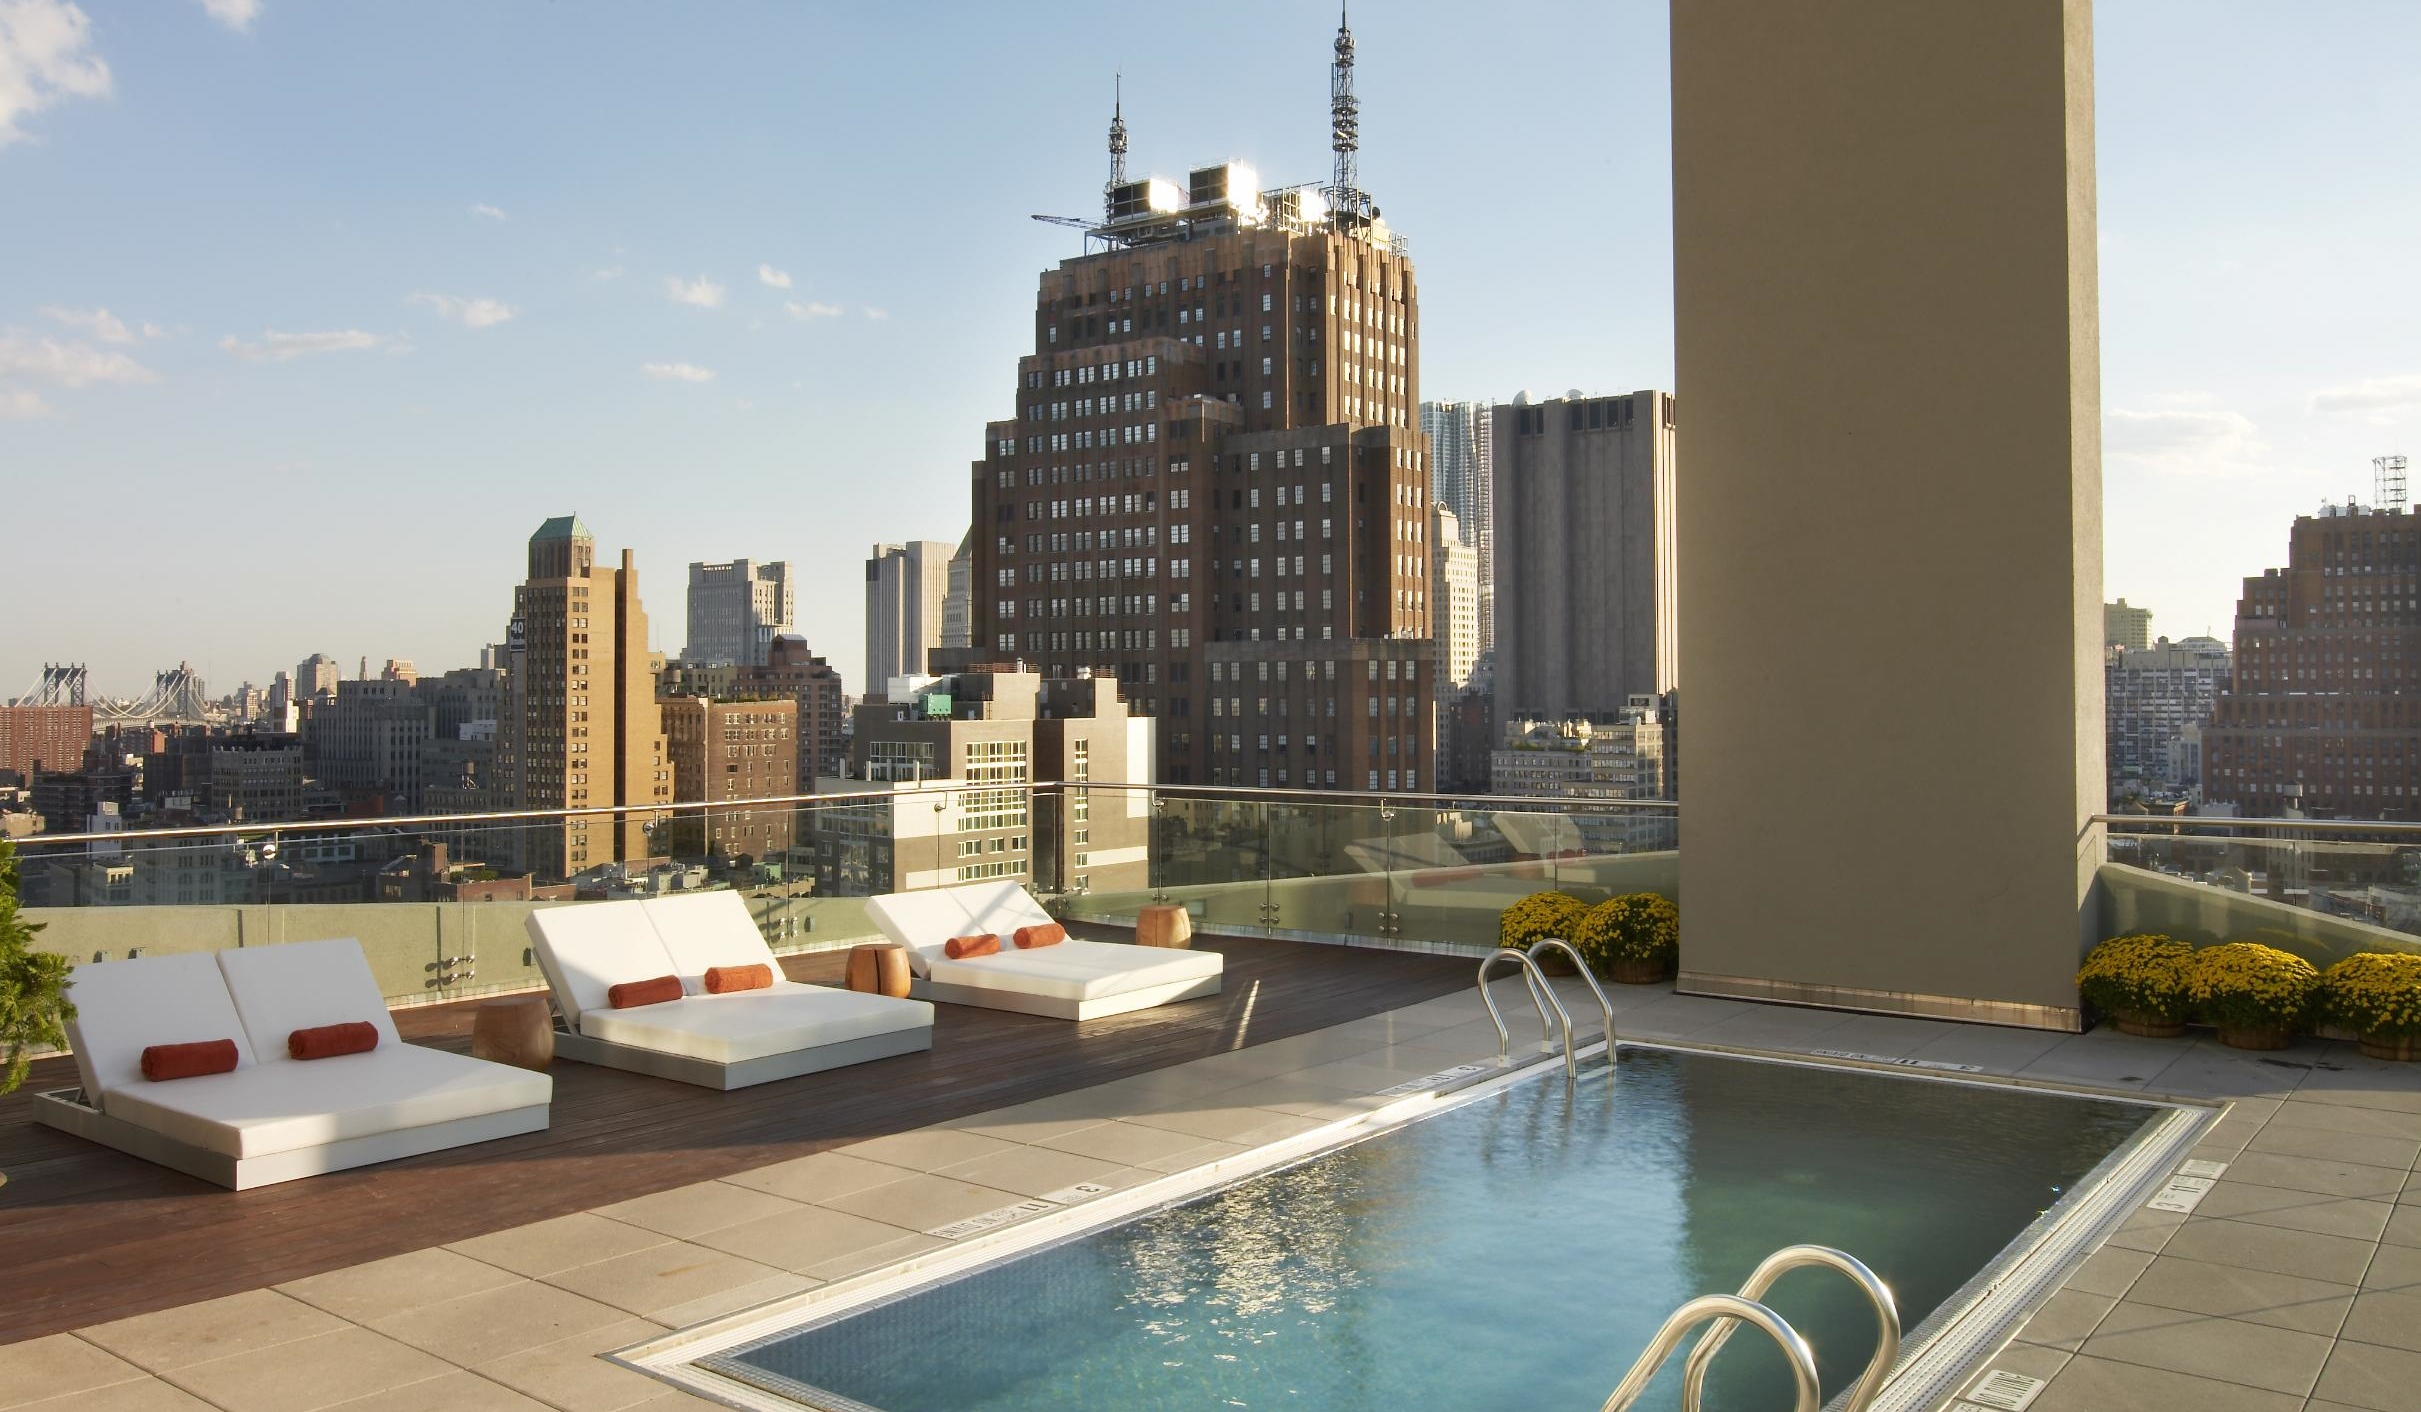 Nos Neuf Rooftops Preferes A New York French Morning